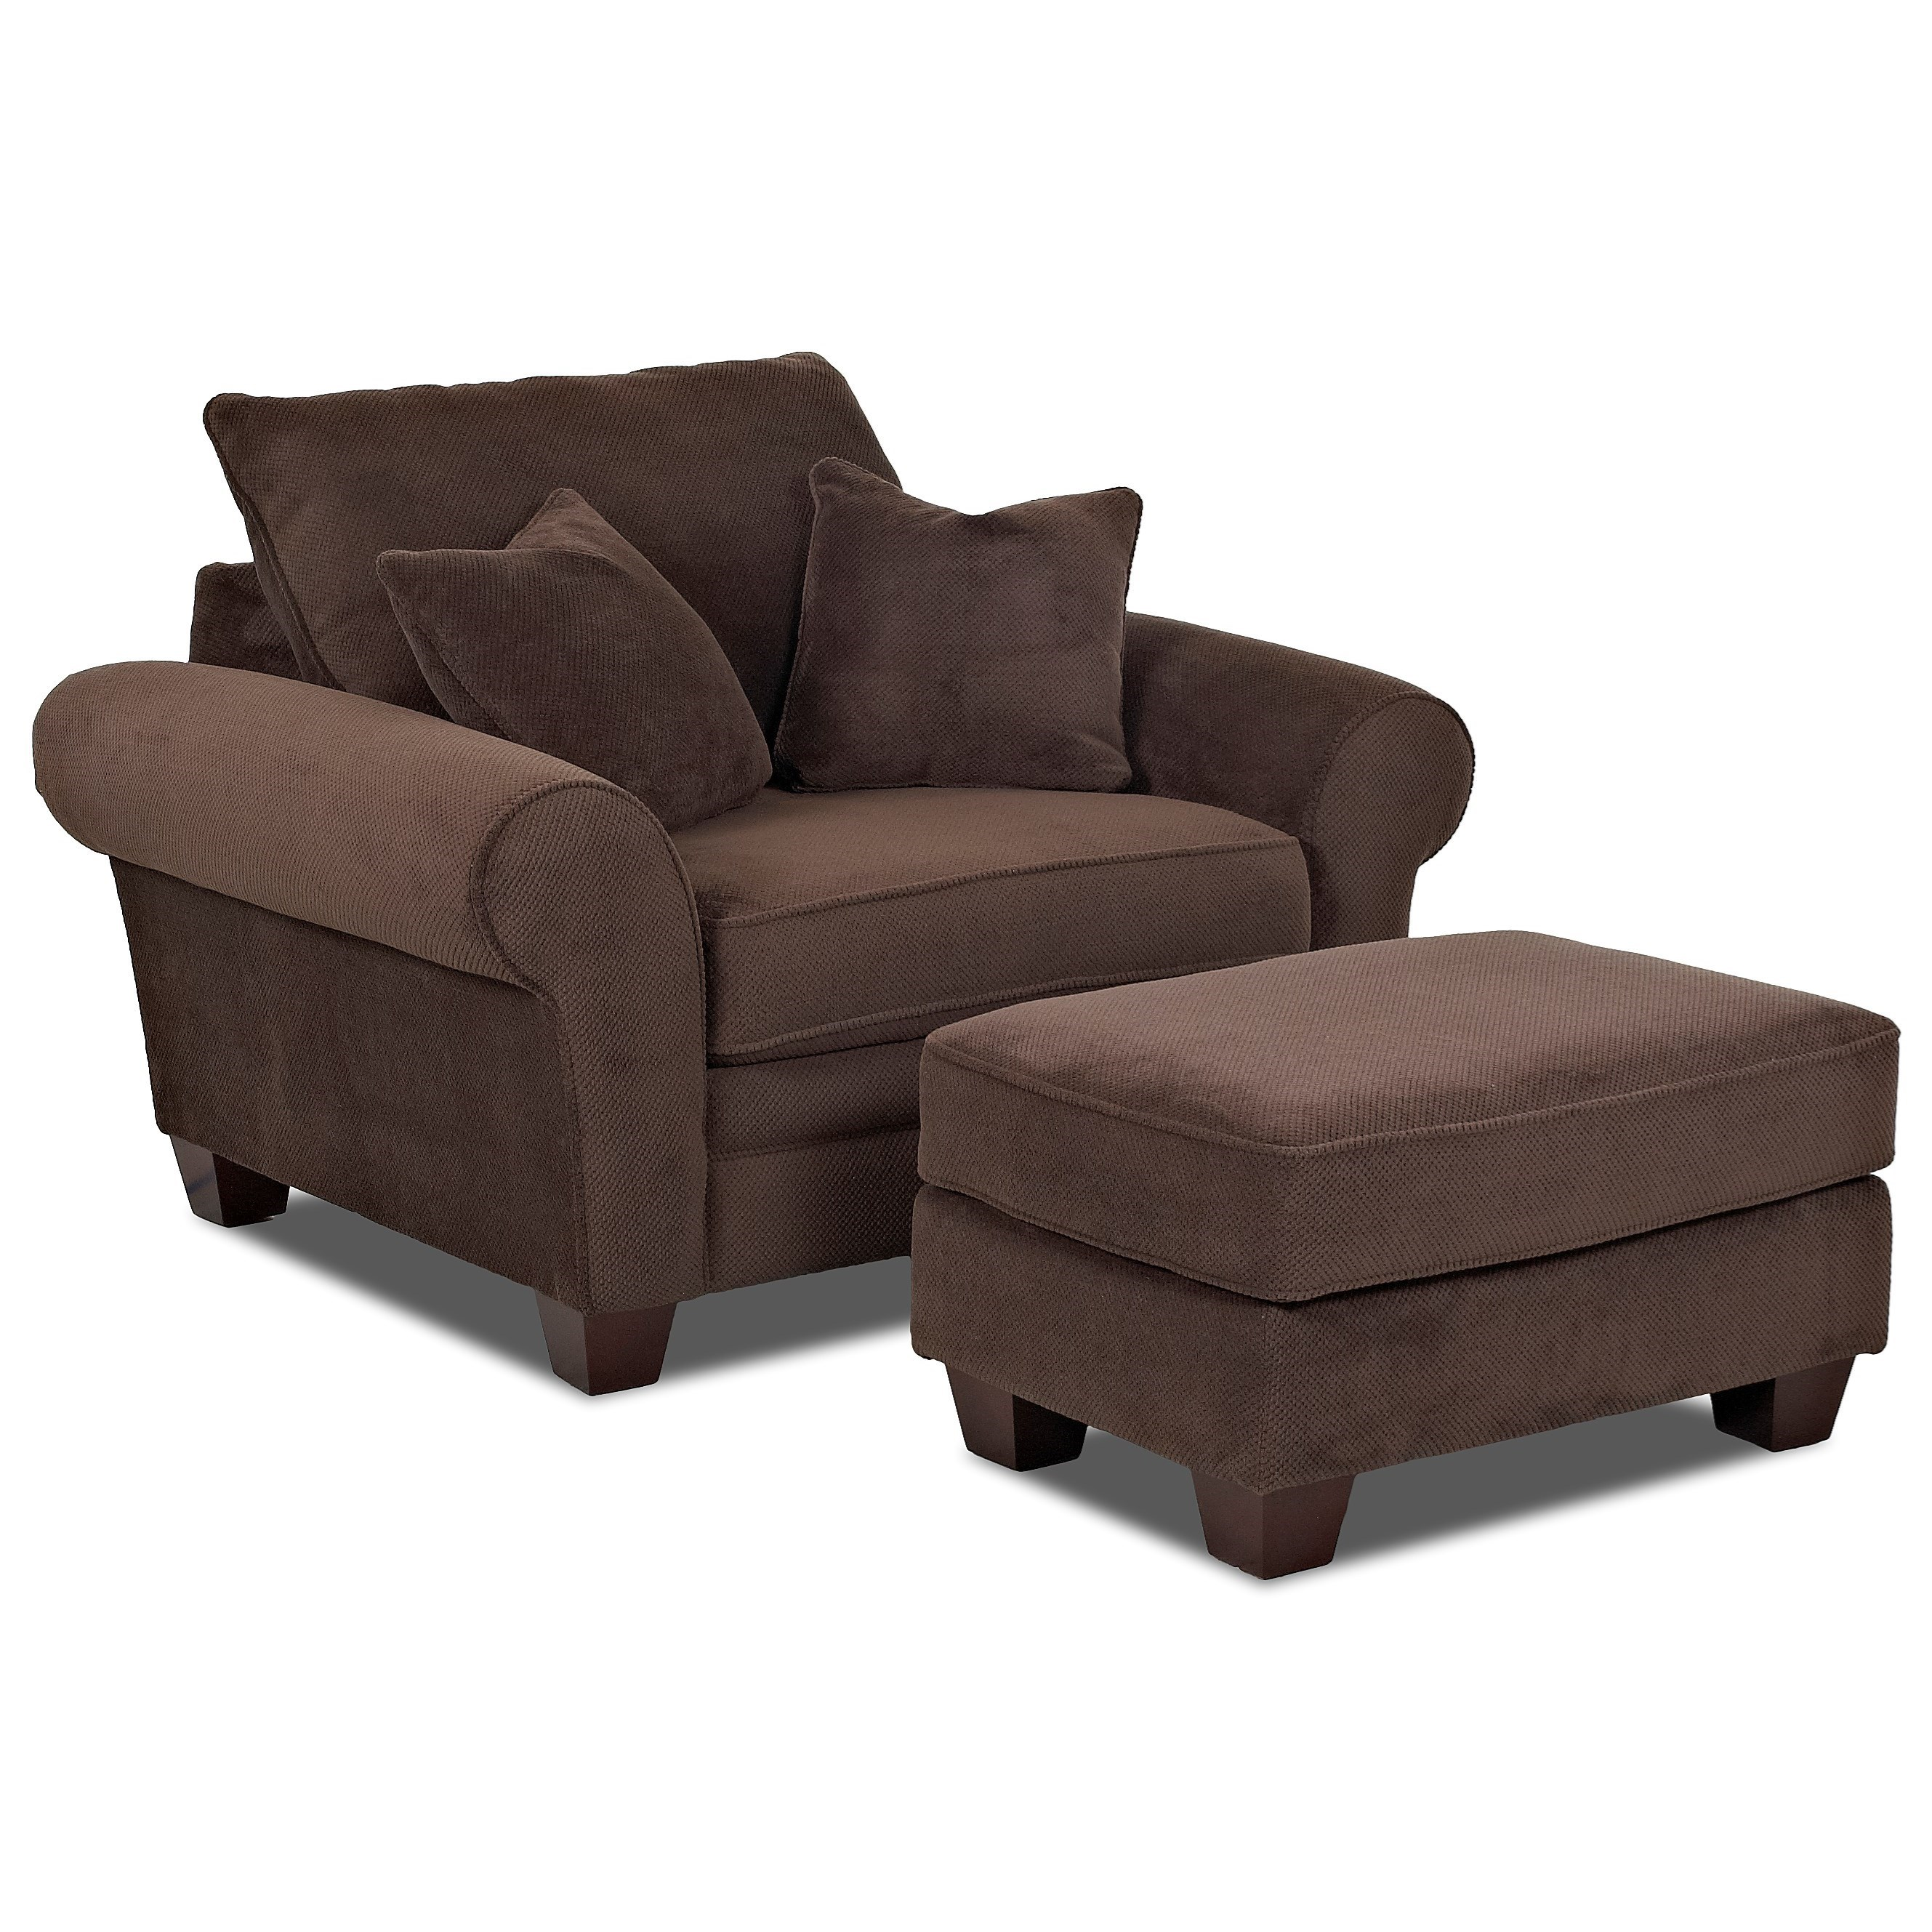 Klaussner Kazler Chair and Ottoman - Item Number: K57000 C+K57000 OTTO